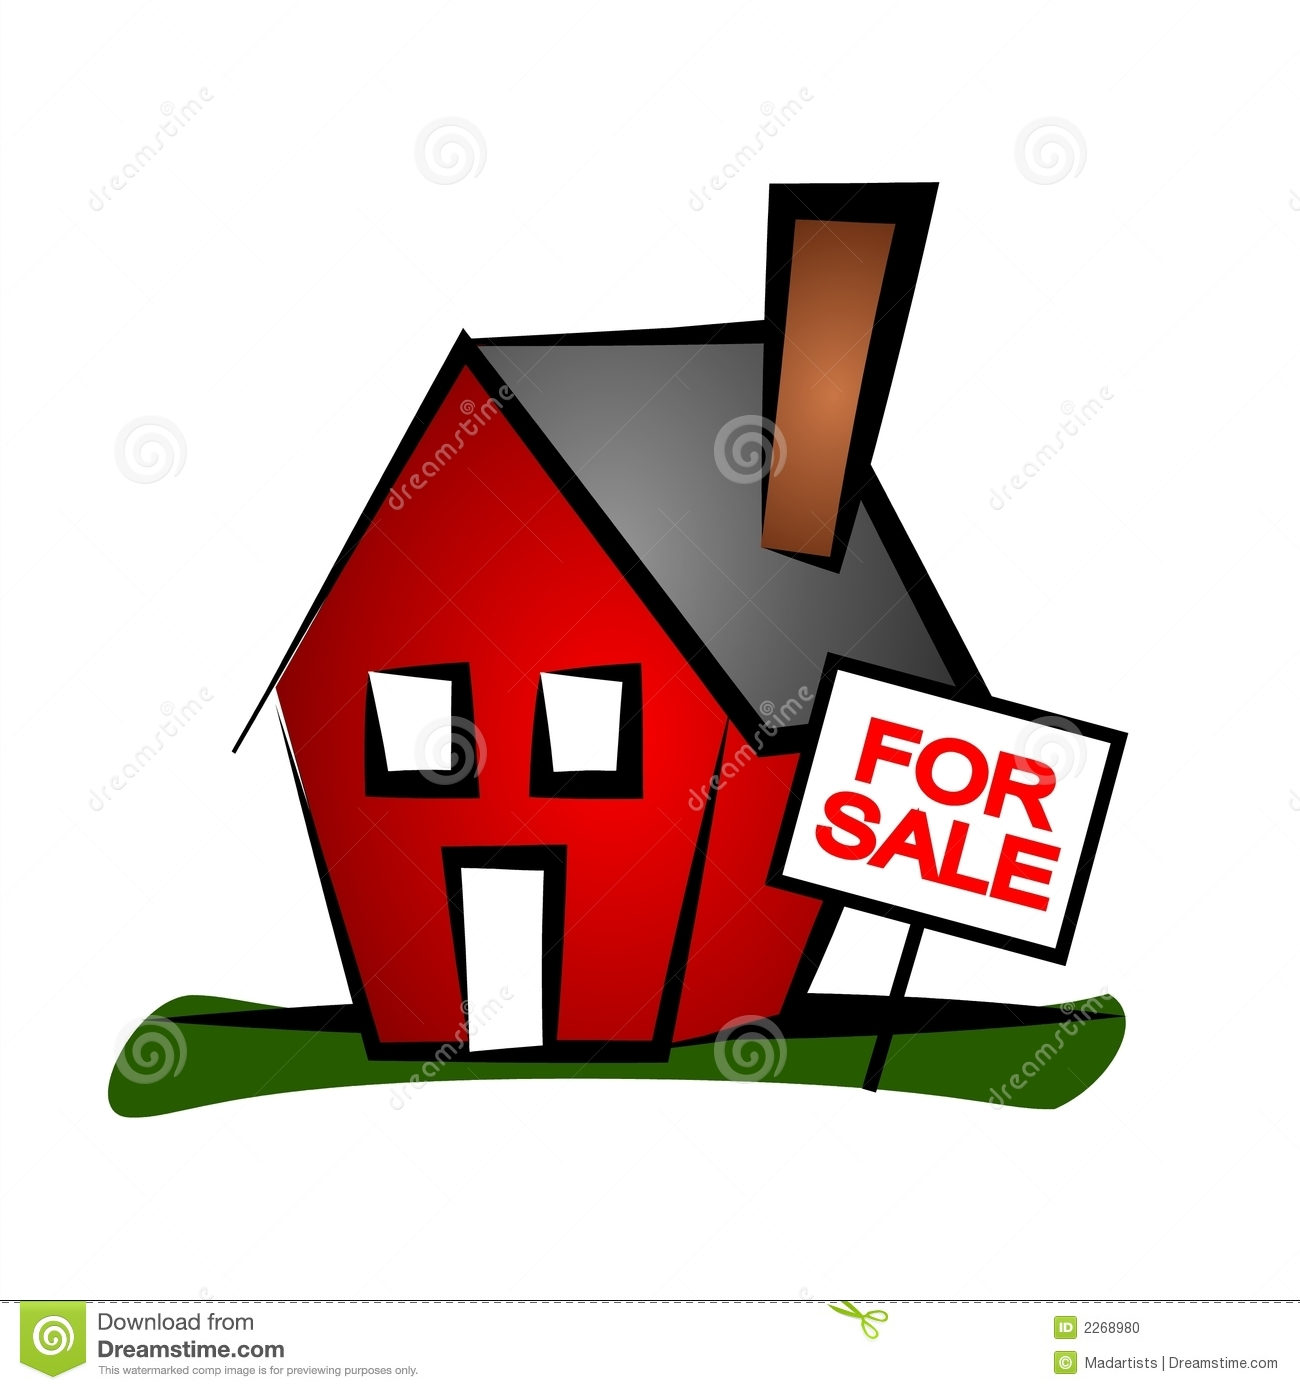 Download Signs For Sale House Clipart-Download Signs For Sale House Clipart-11